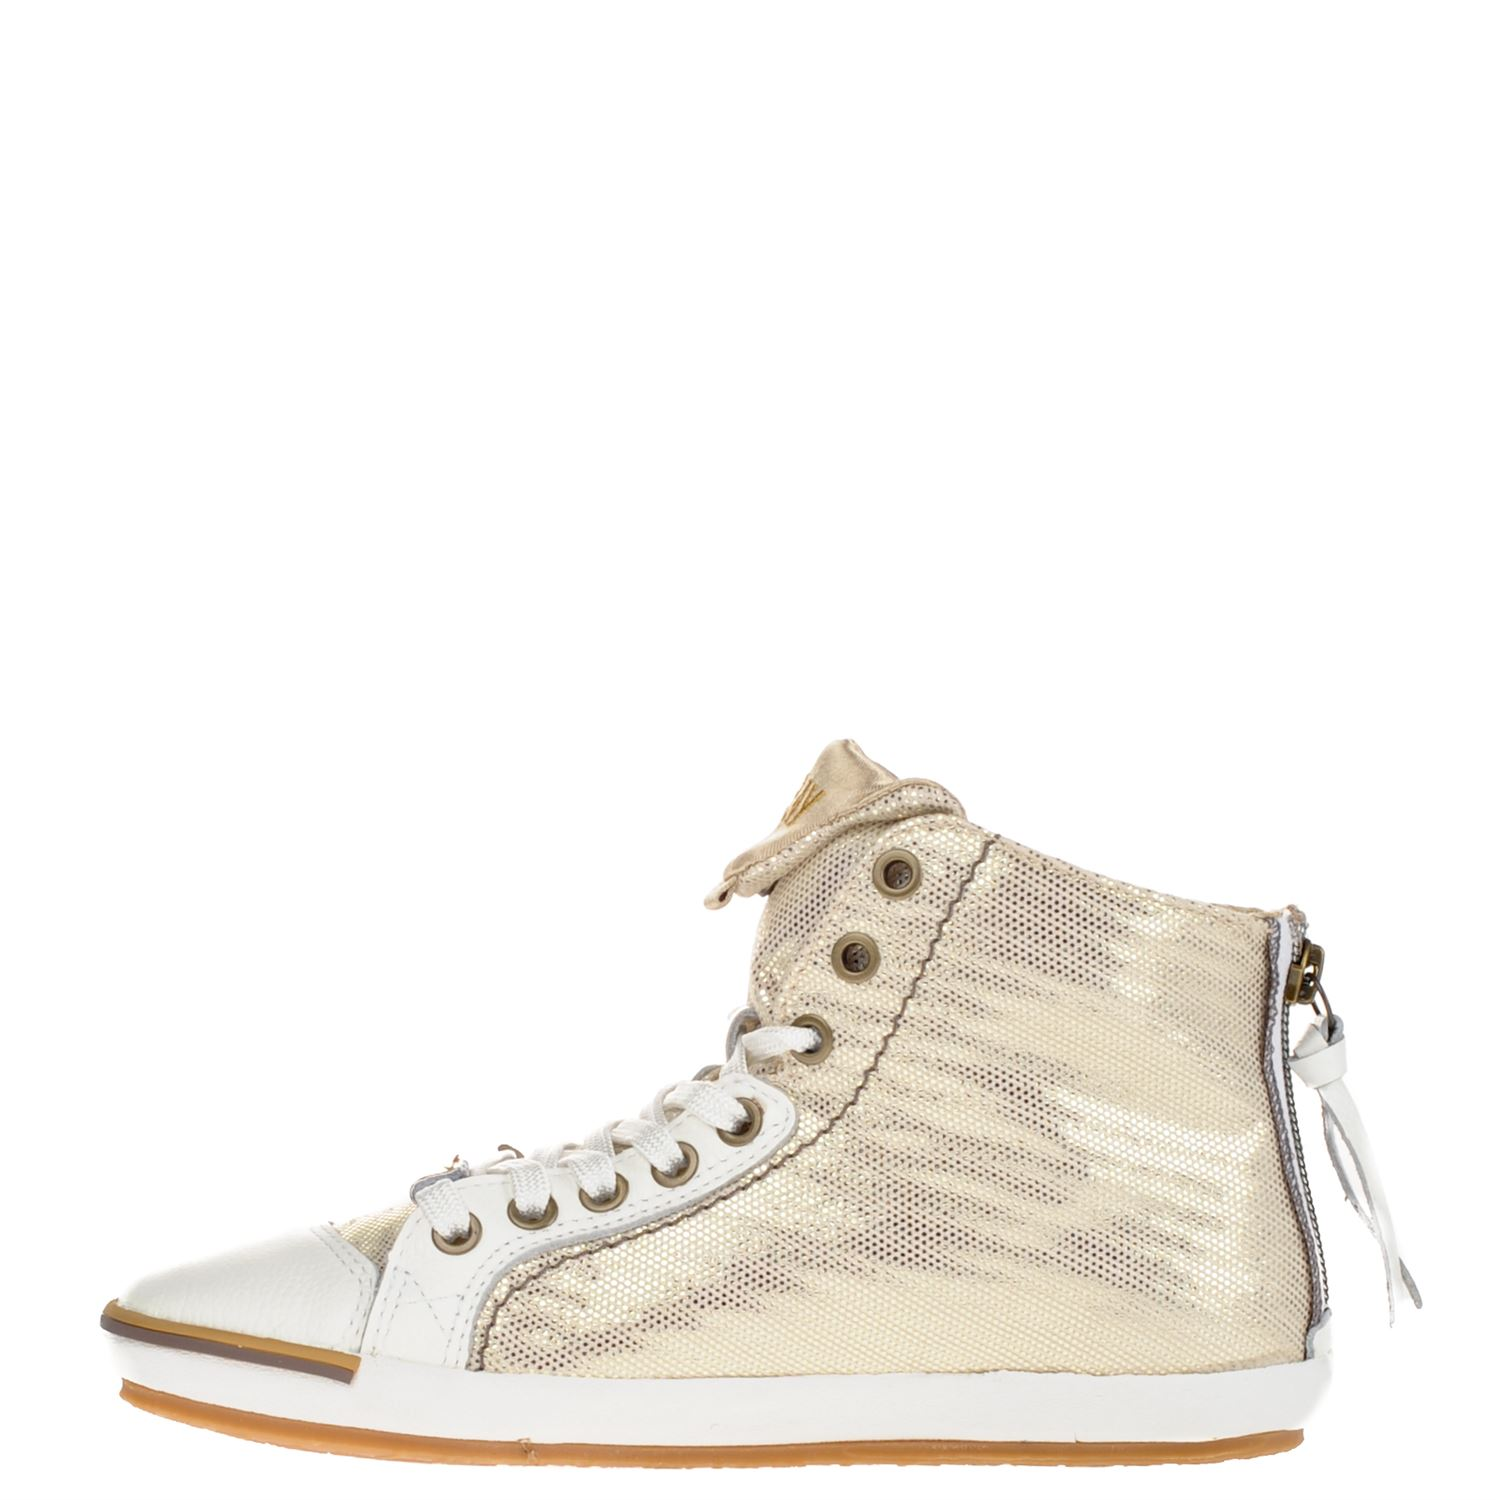 160d57e7a9f Replay dames hoge sneakers goud